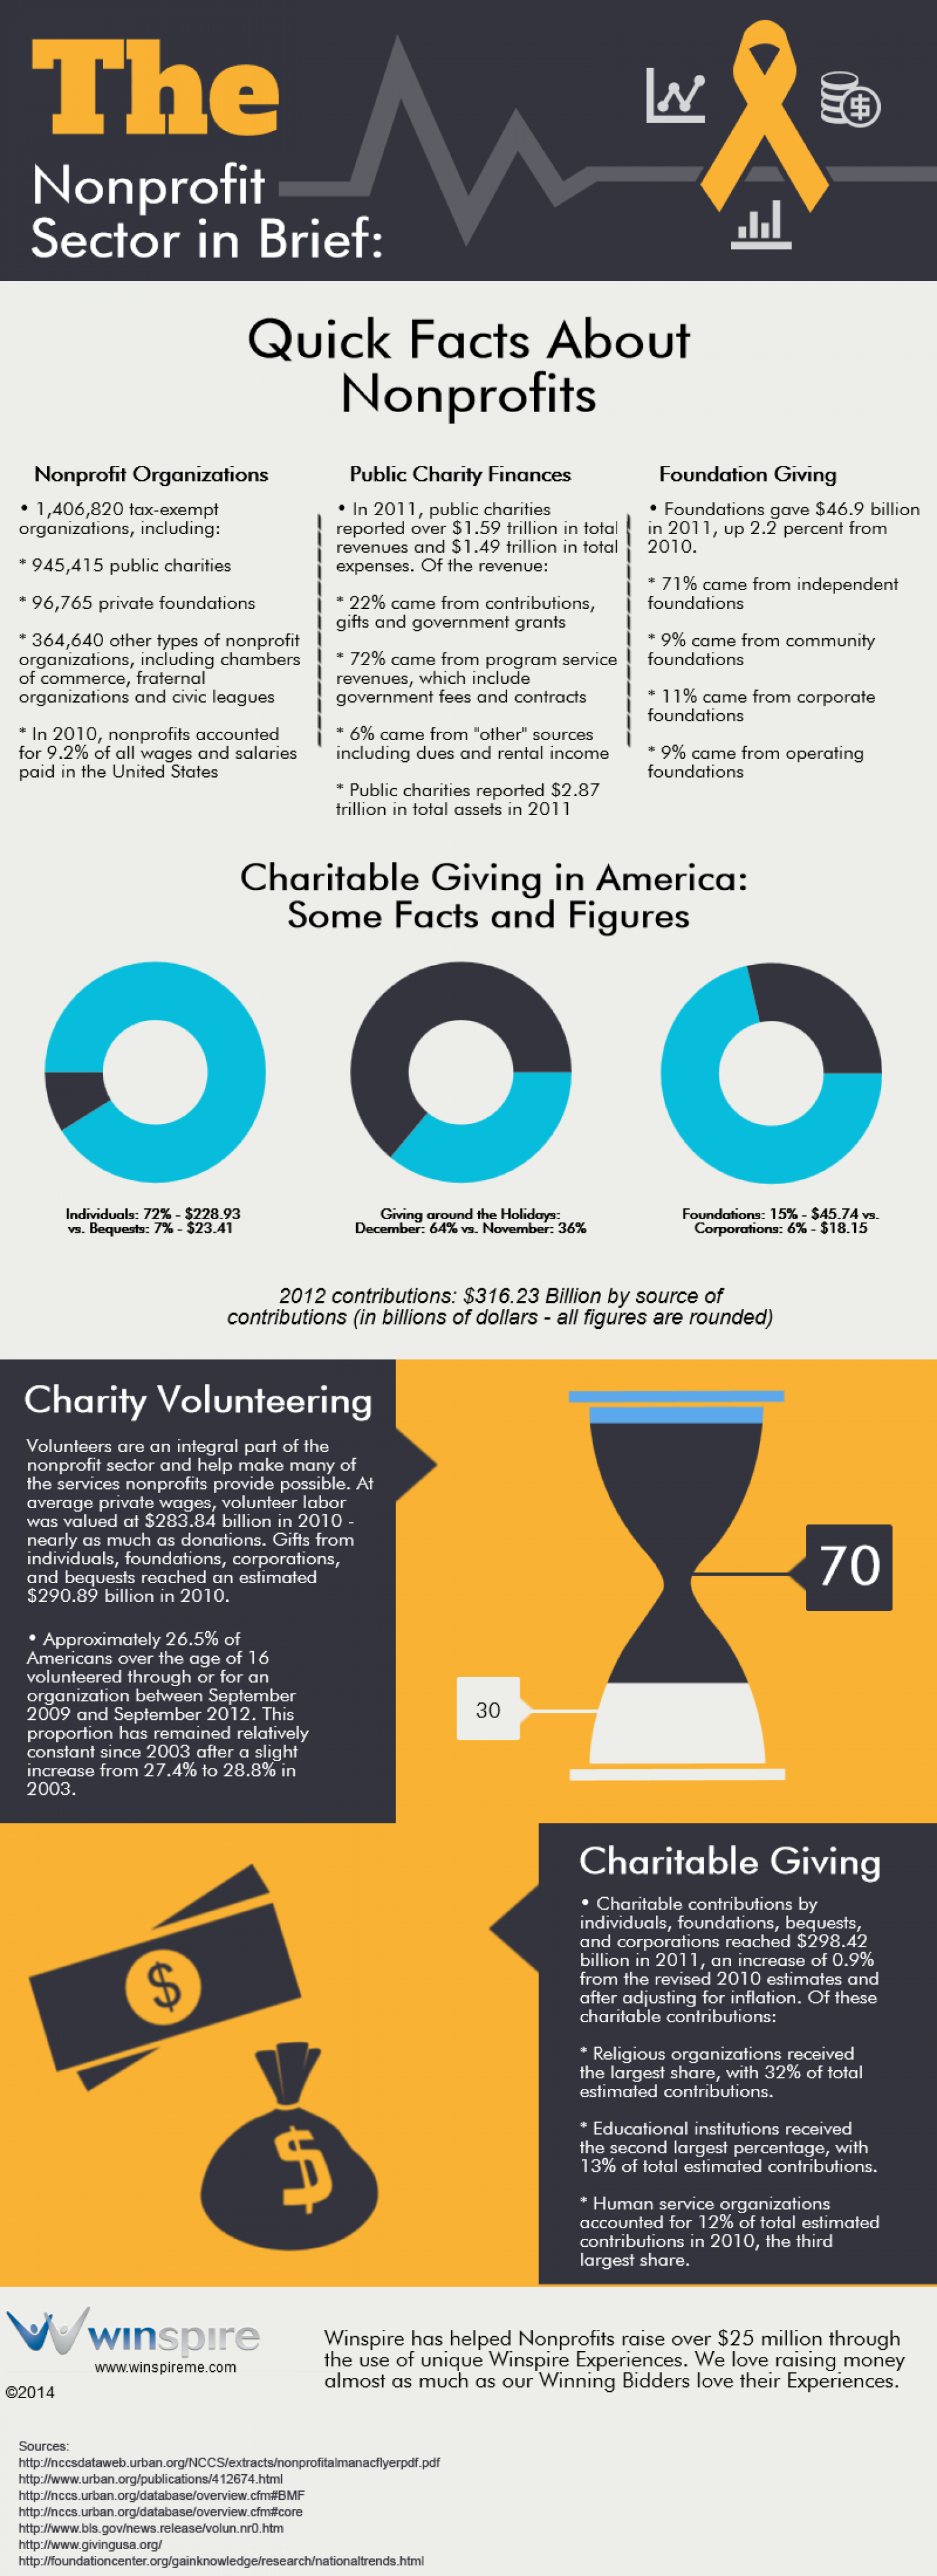 The Nonprofit Sector in Brief Infographic